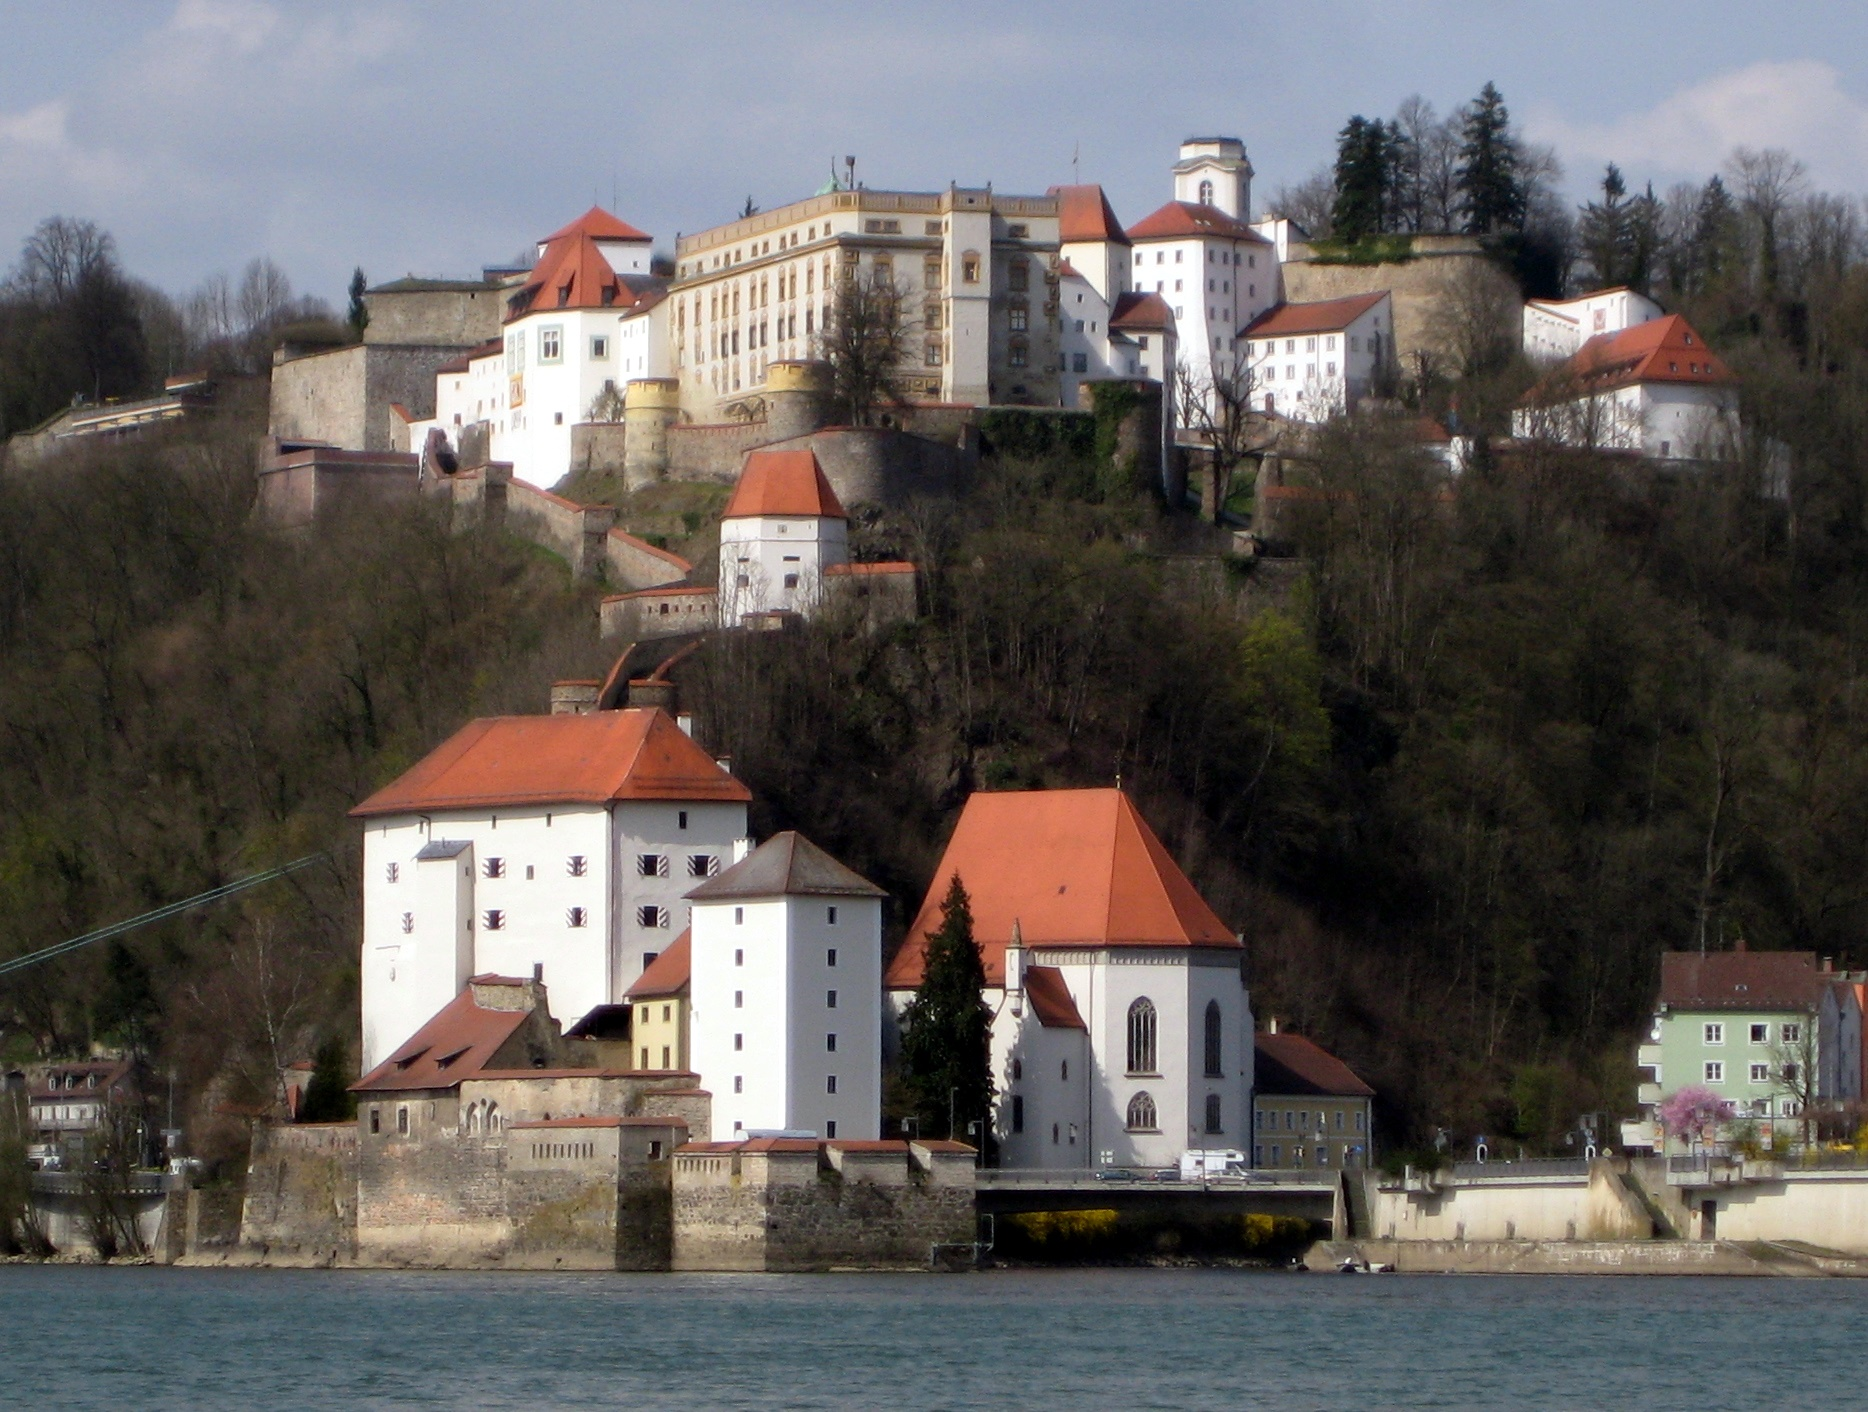 passau dating site This cruise begins in passau and then downstream along the danube to budapest,  magnificent and hugely impressive buildings dating from many different eras are.